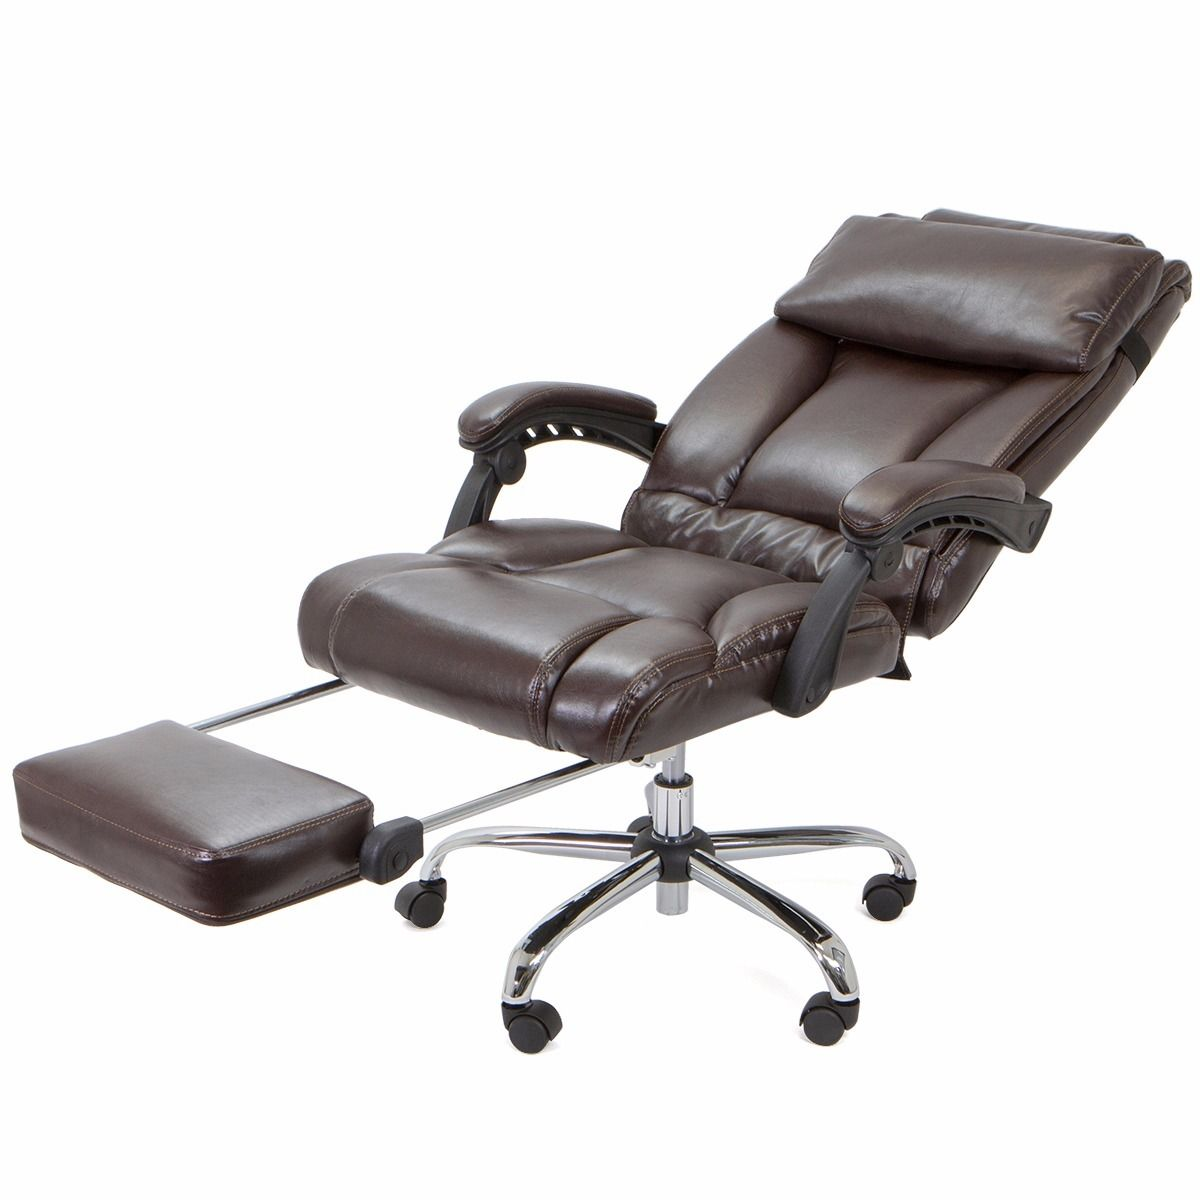 Barton Chair Barton Executive Reclining Office Chair Ergonomic High